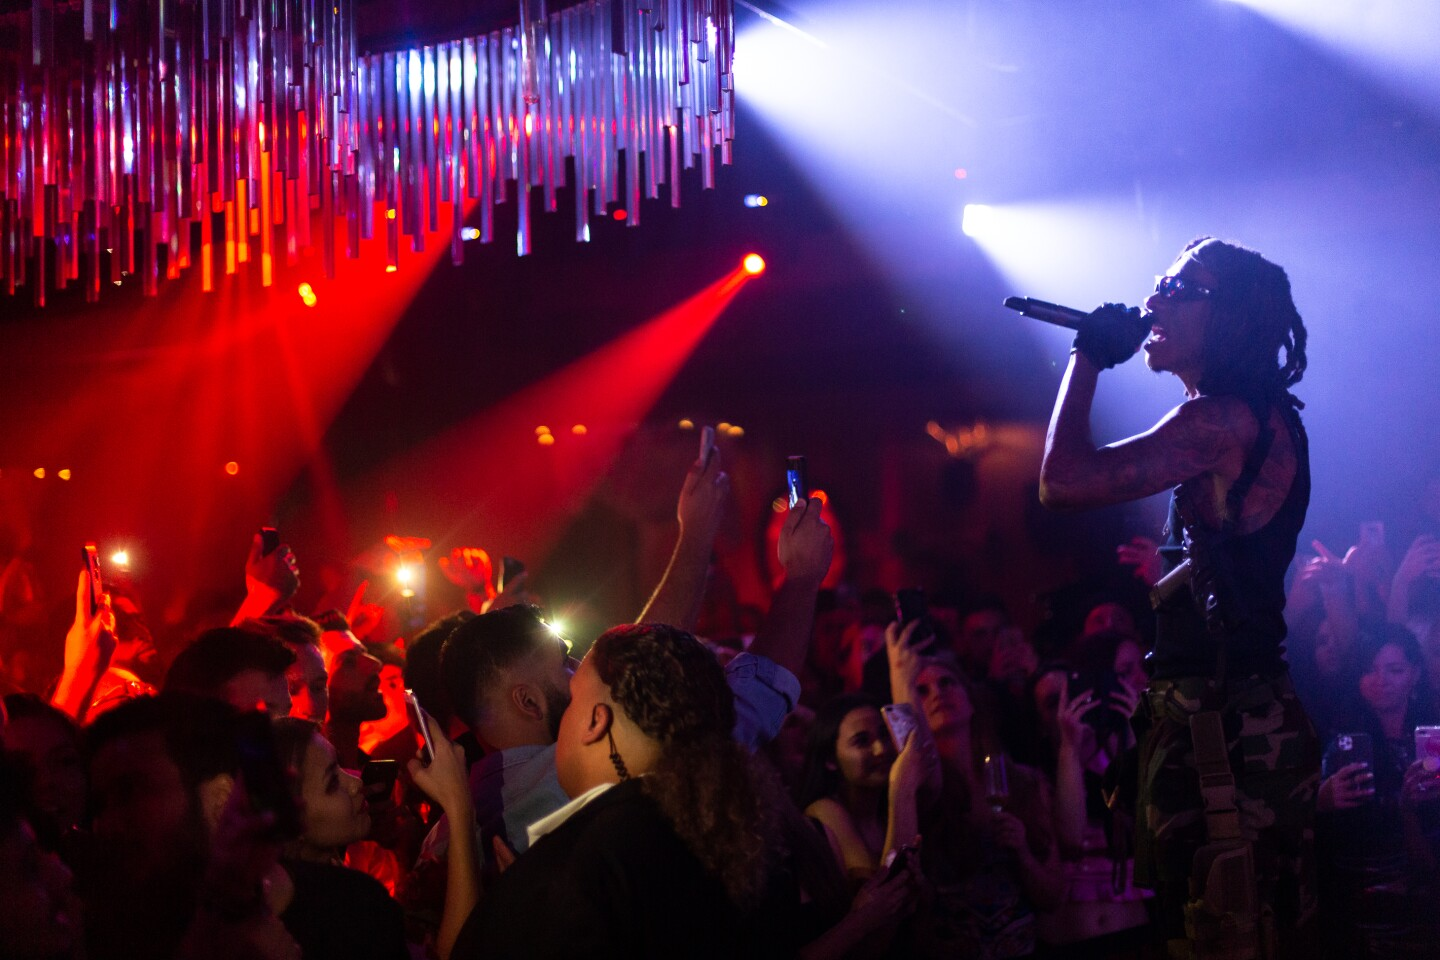 Oxford Social Club in the Gaslamp welcomed Wiz Khalifa to its Oxford Horror Story party on Friday, Oct. 25, 2019.